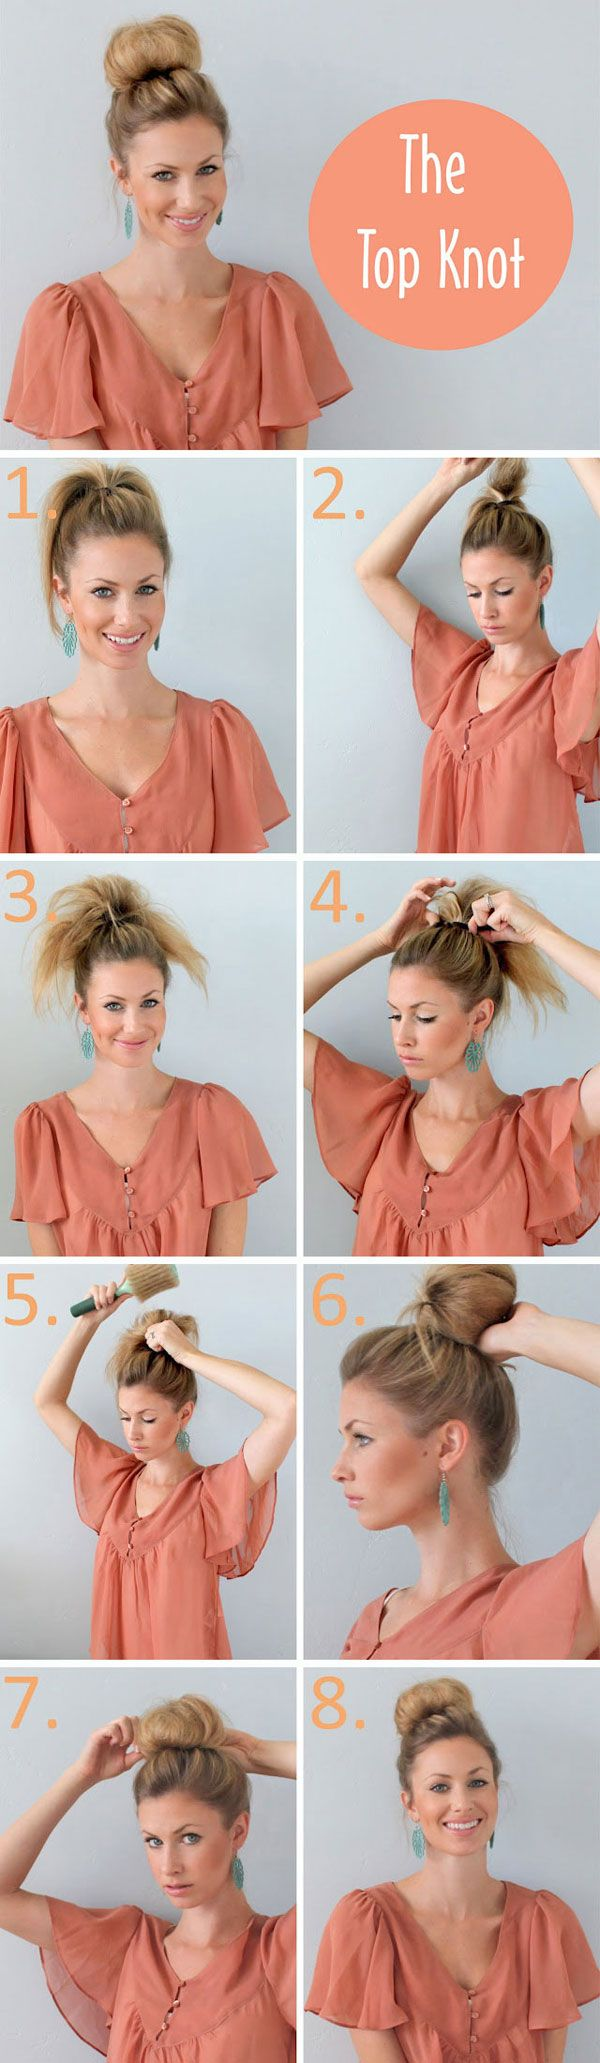 best hairs images on pinterest make up braids and hairstyles